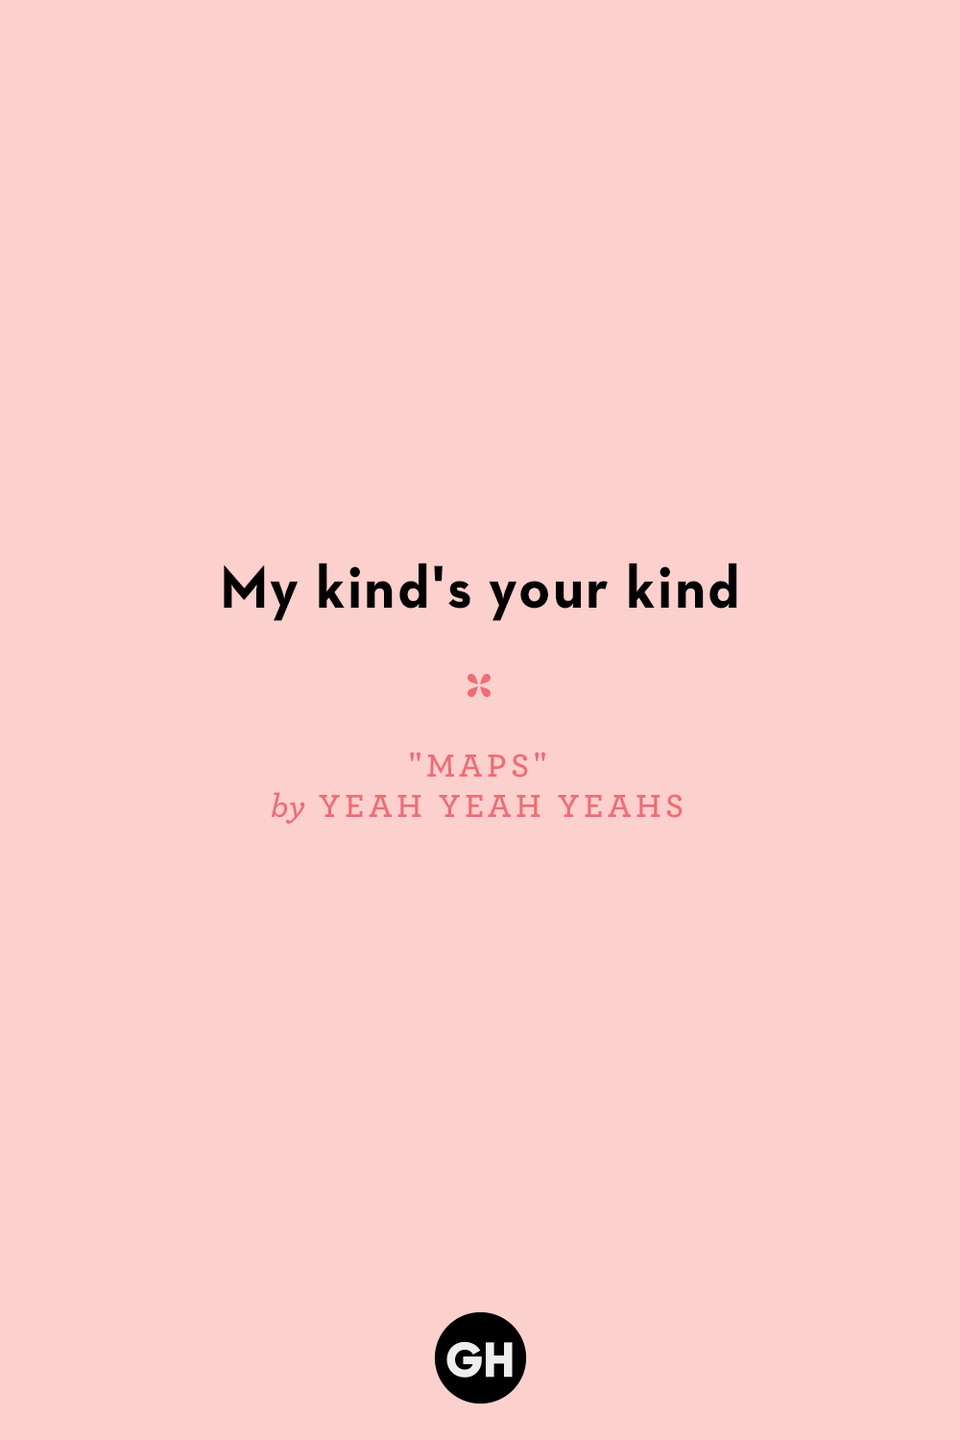 <p>My kind's your kind</p>